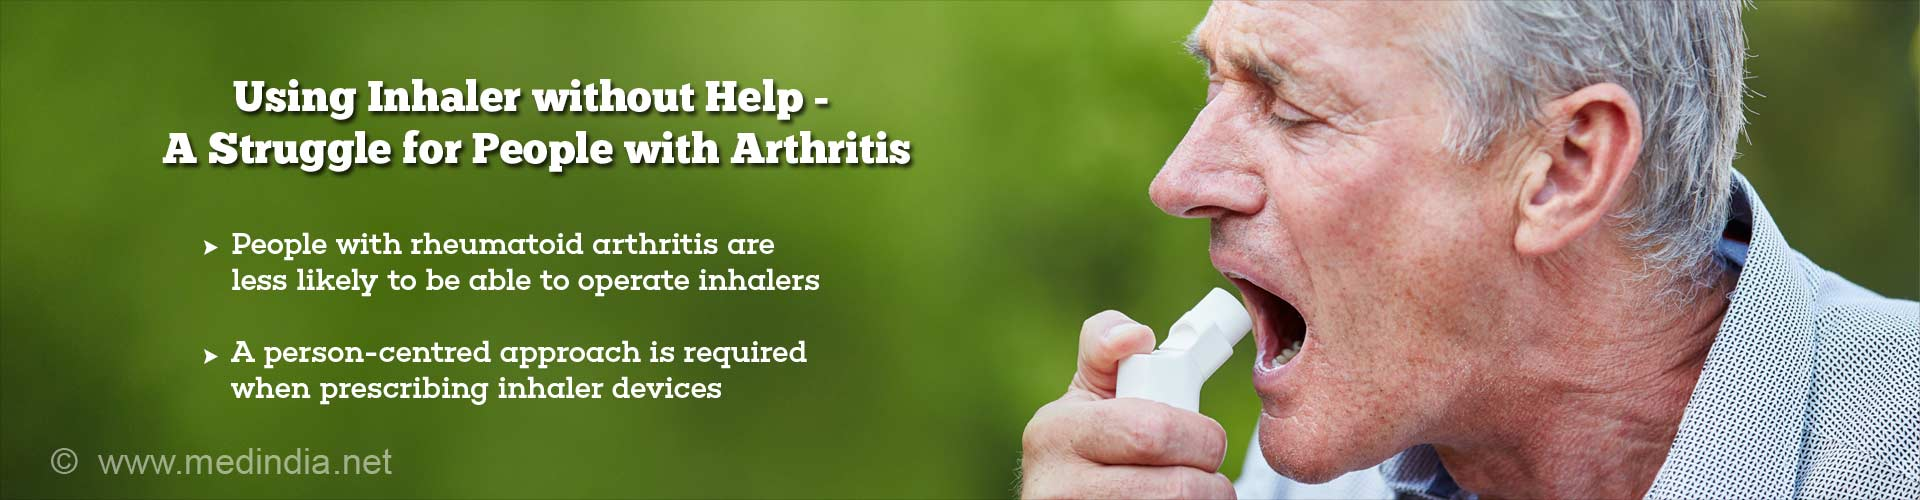 Using Inhaler Without Help - A Struggle for People With Arthritis